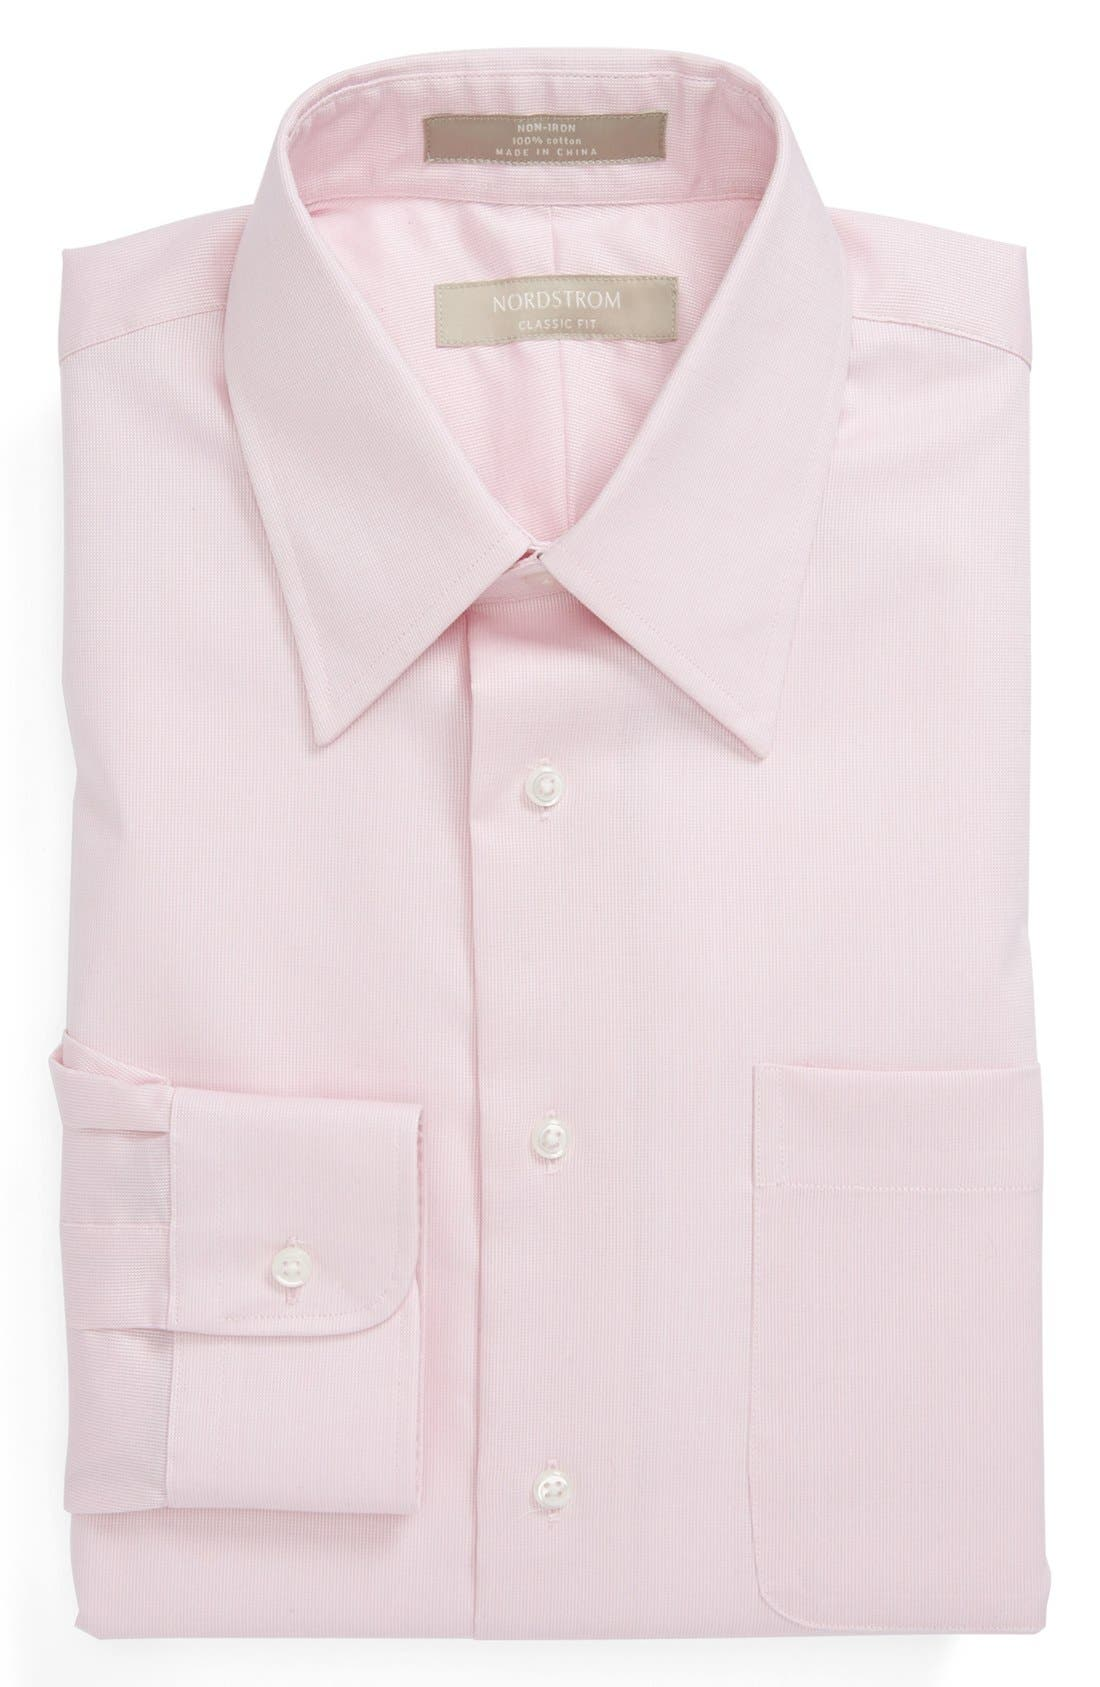 Main Image - Nordstrom Classic Fit Non-Iron Dress Shirt (Online Only)